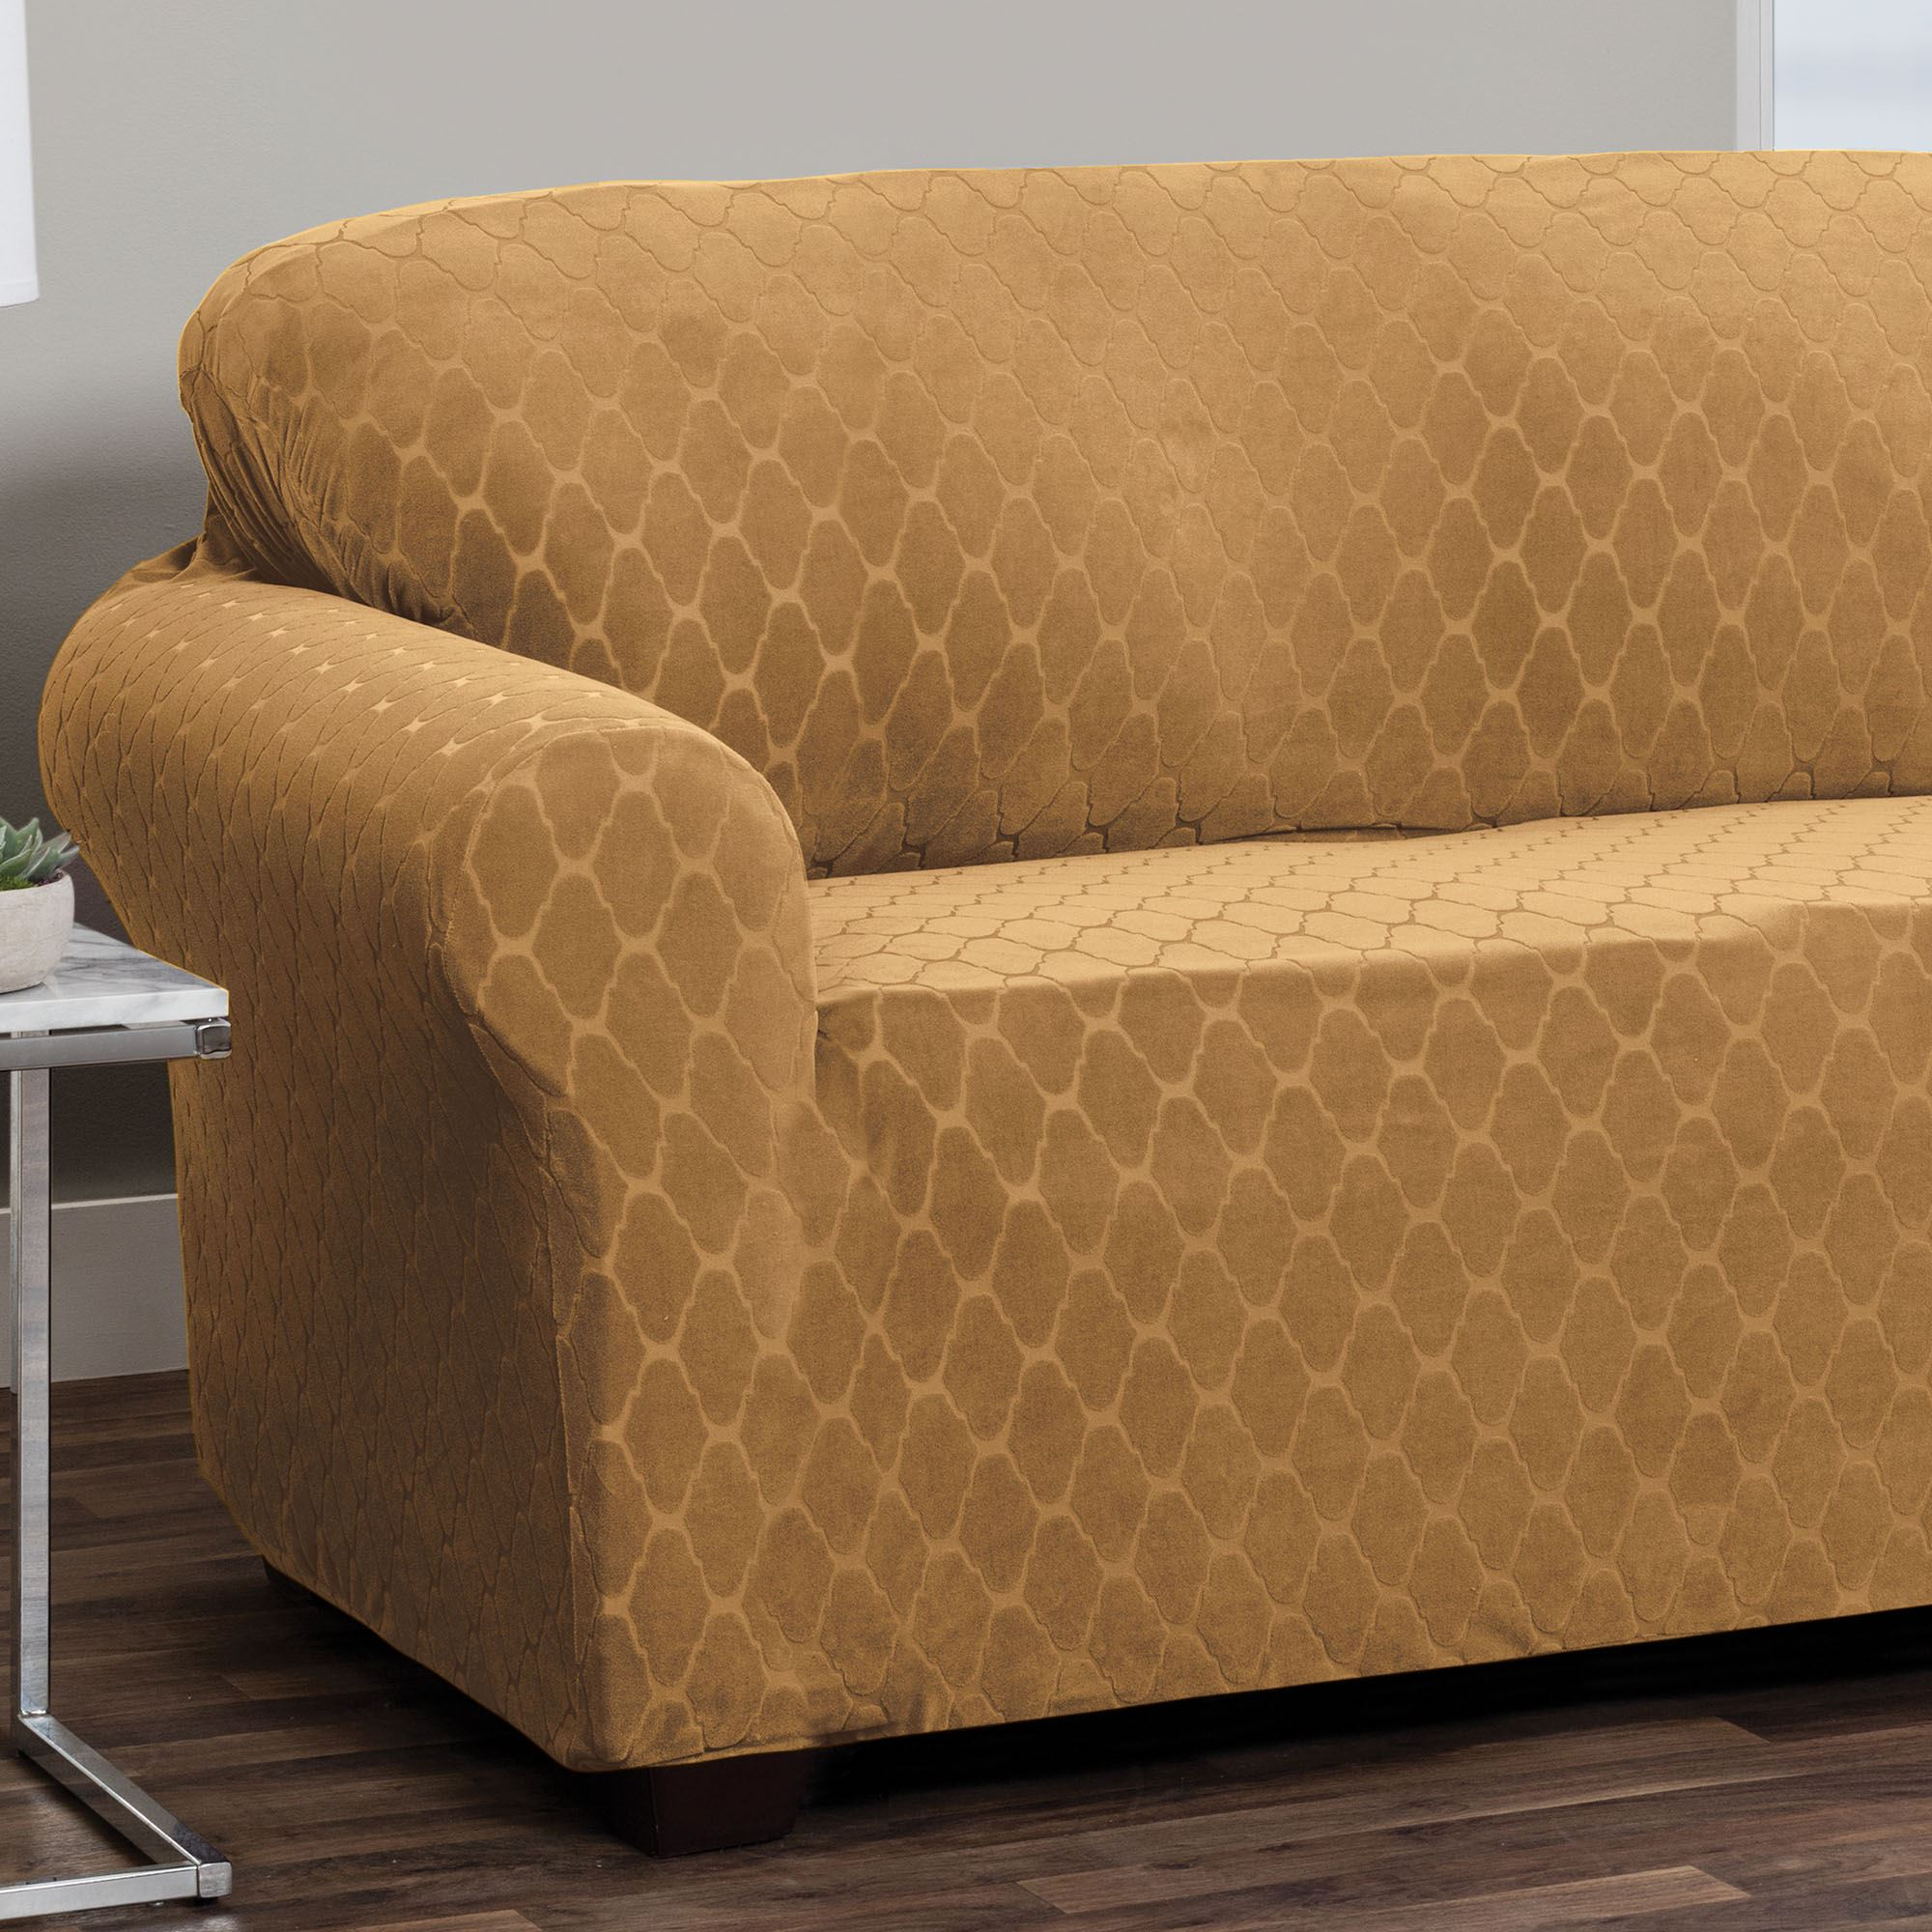 Helix Camel Stretch Furniture Slipcovers